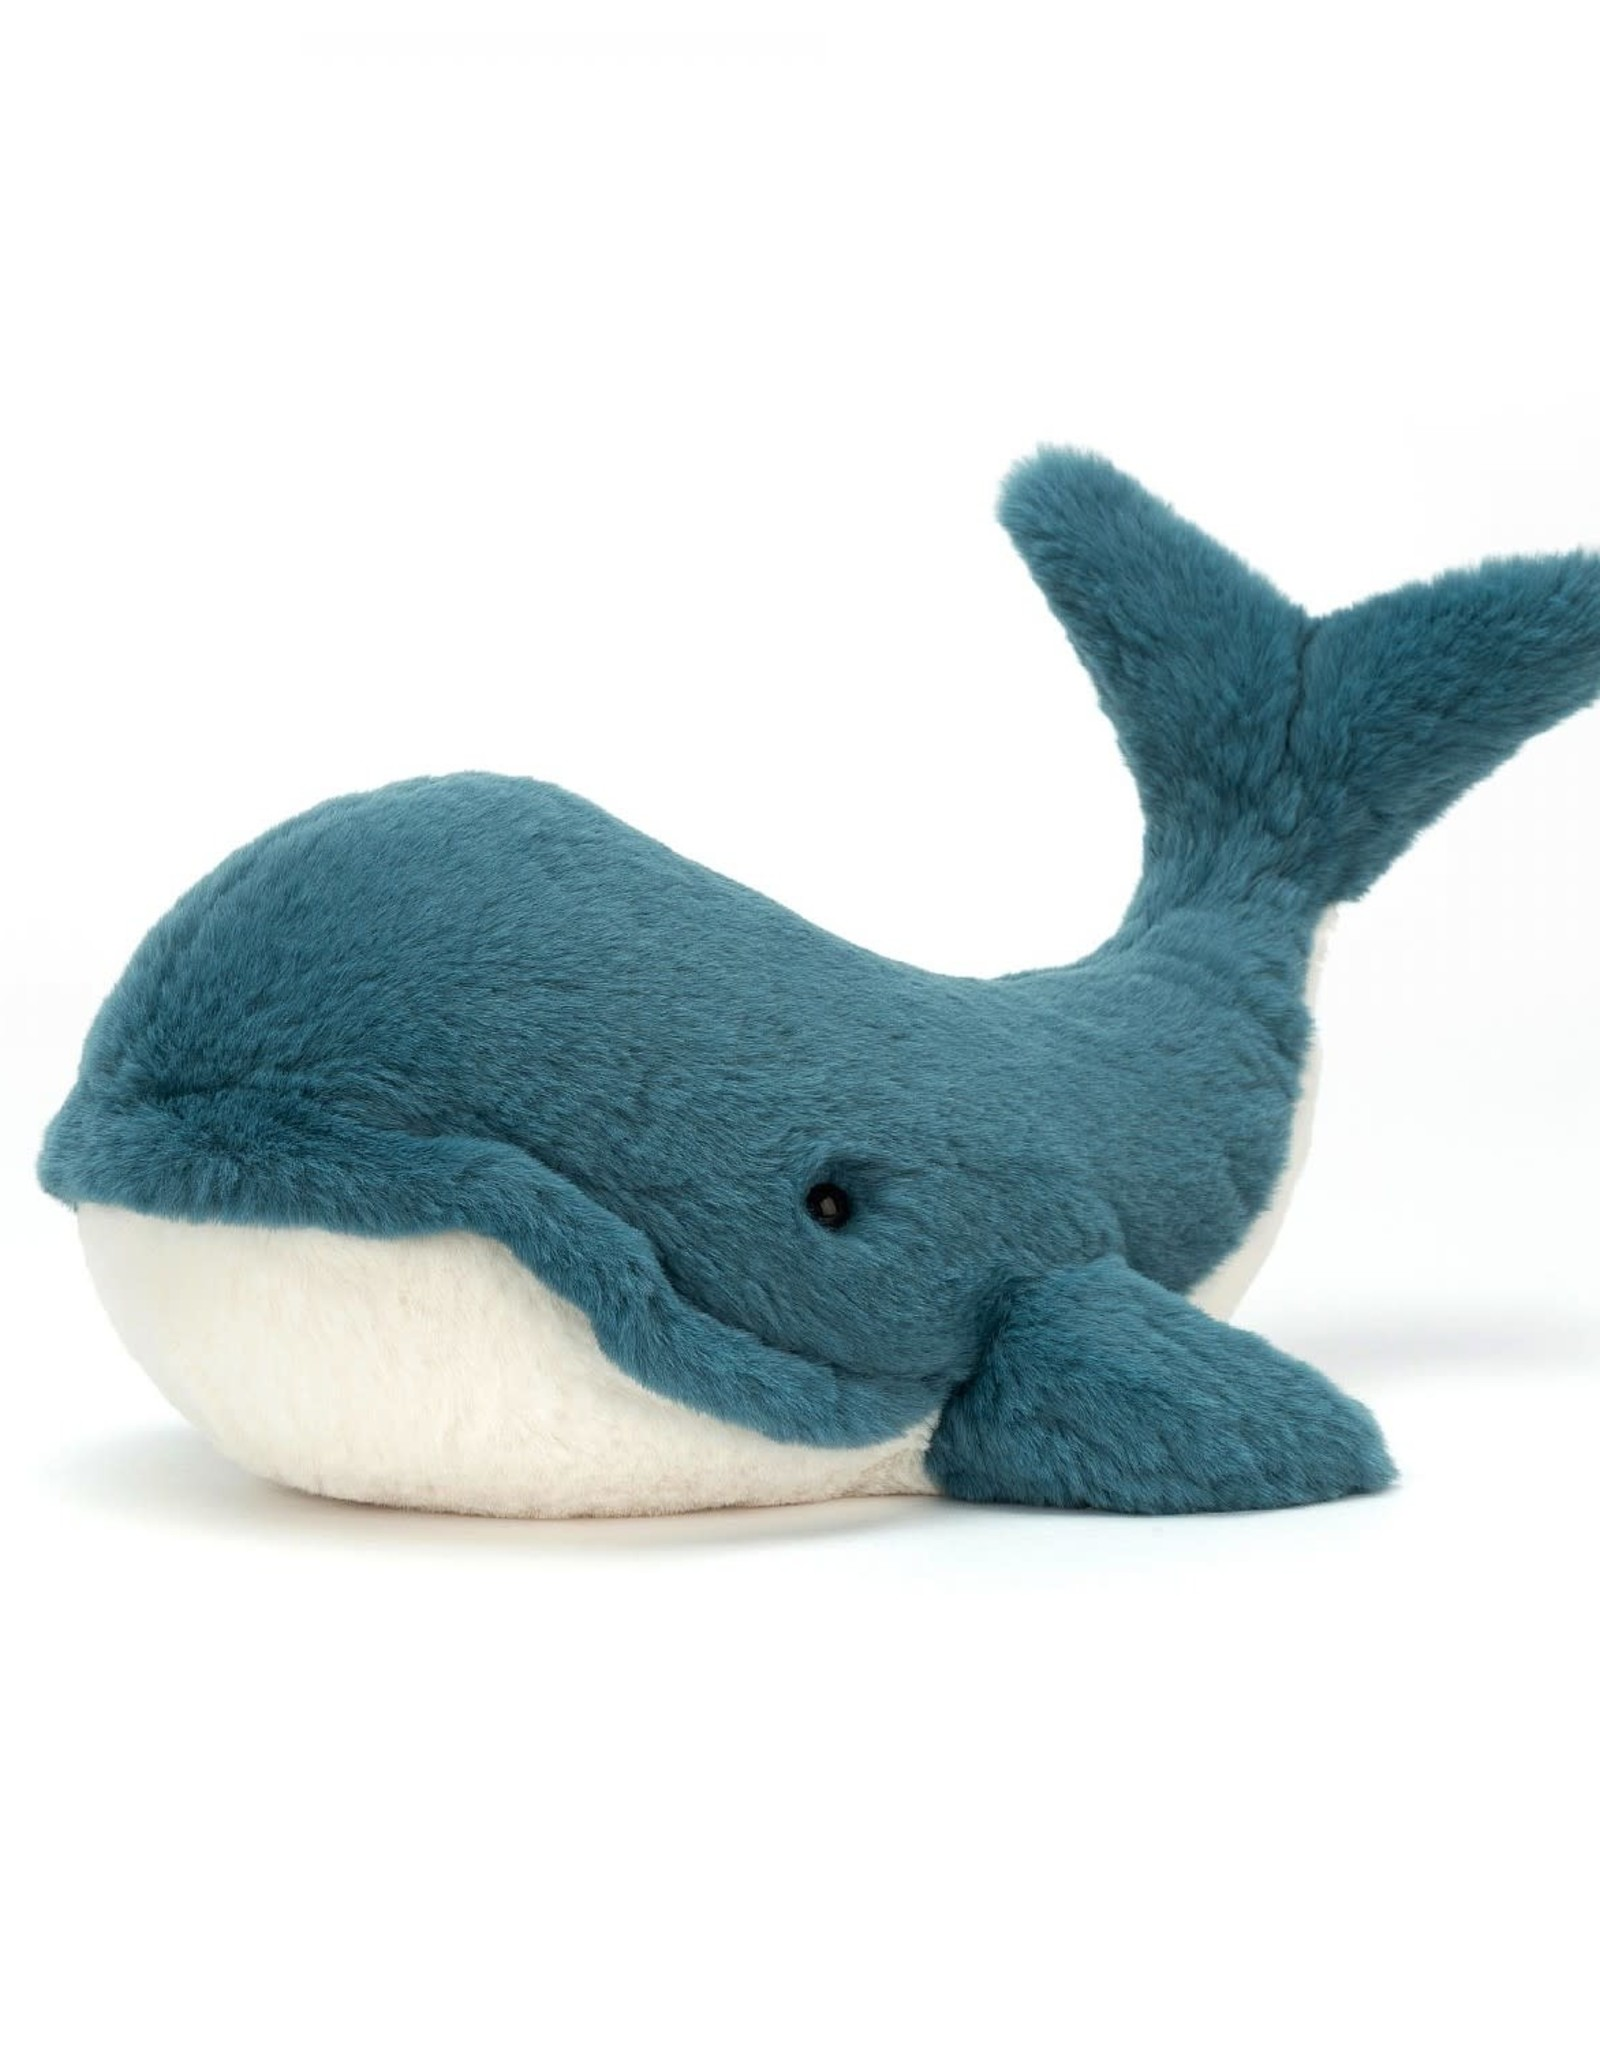 Jellycat Wally Whale Small